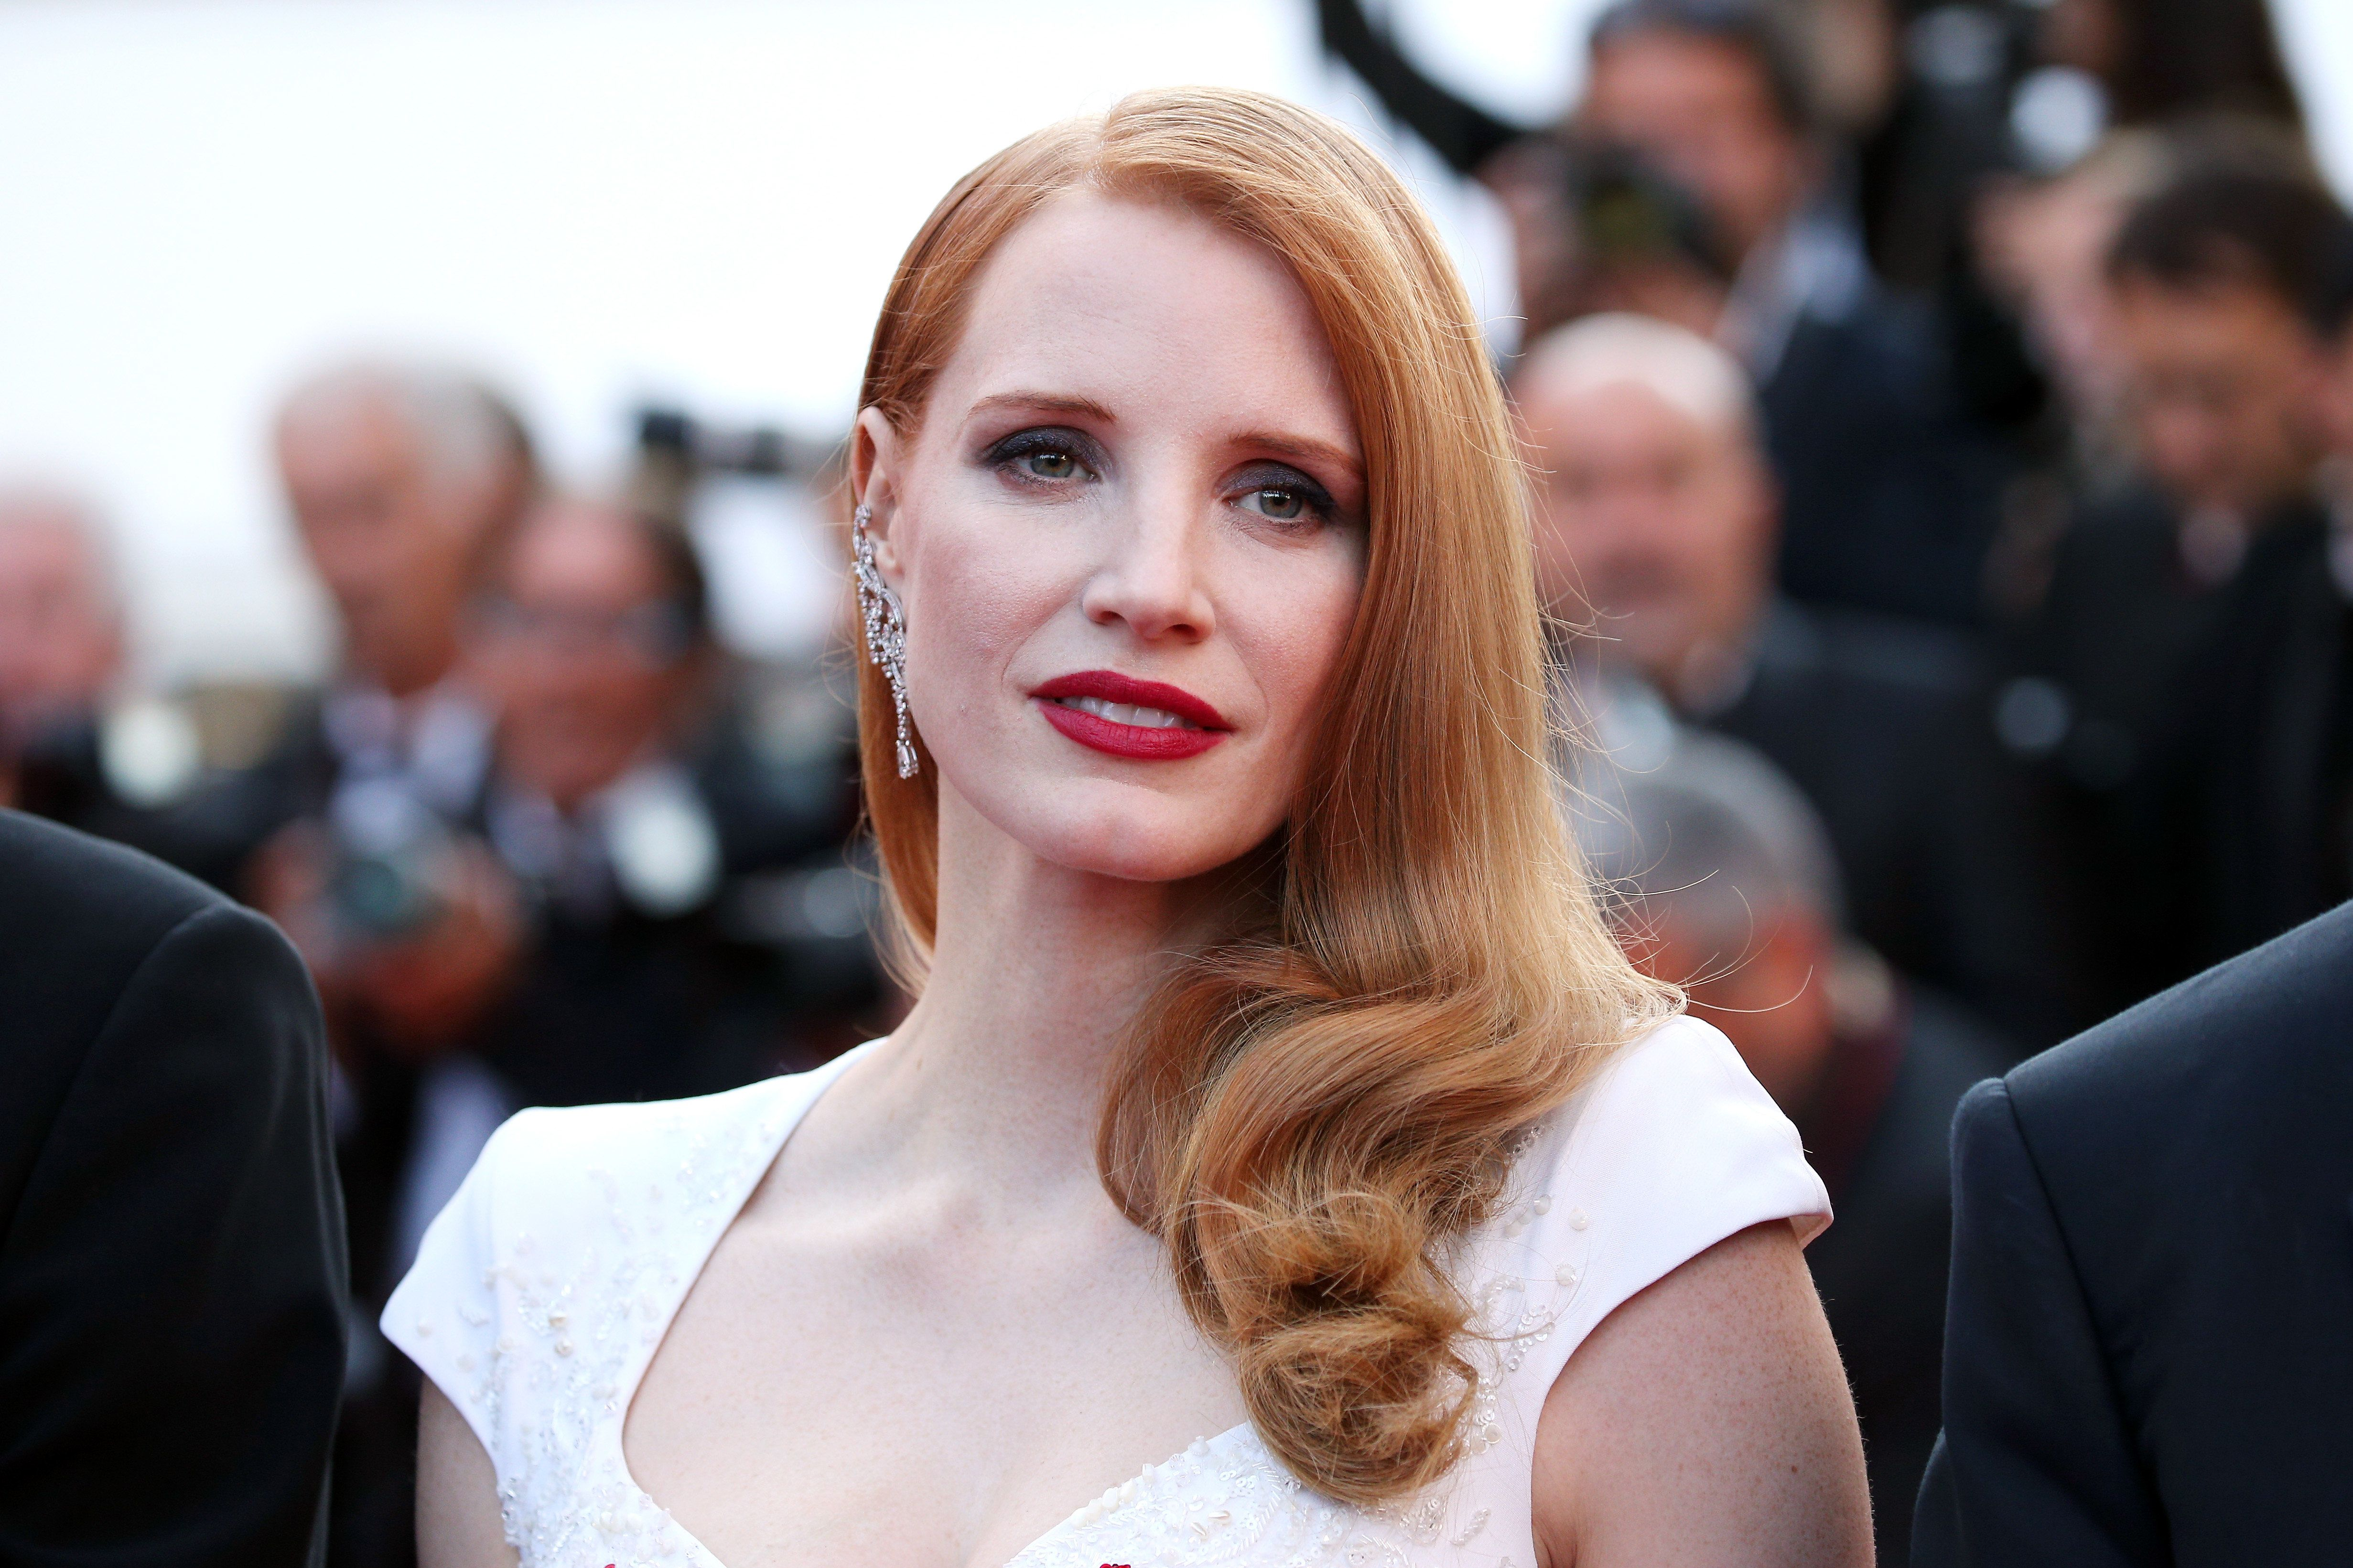 Jessica Chastain at Cannes Film Festival in 2017.